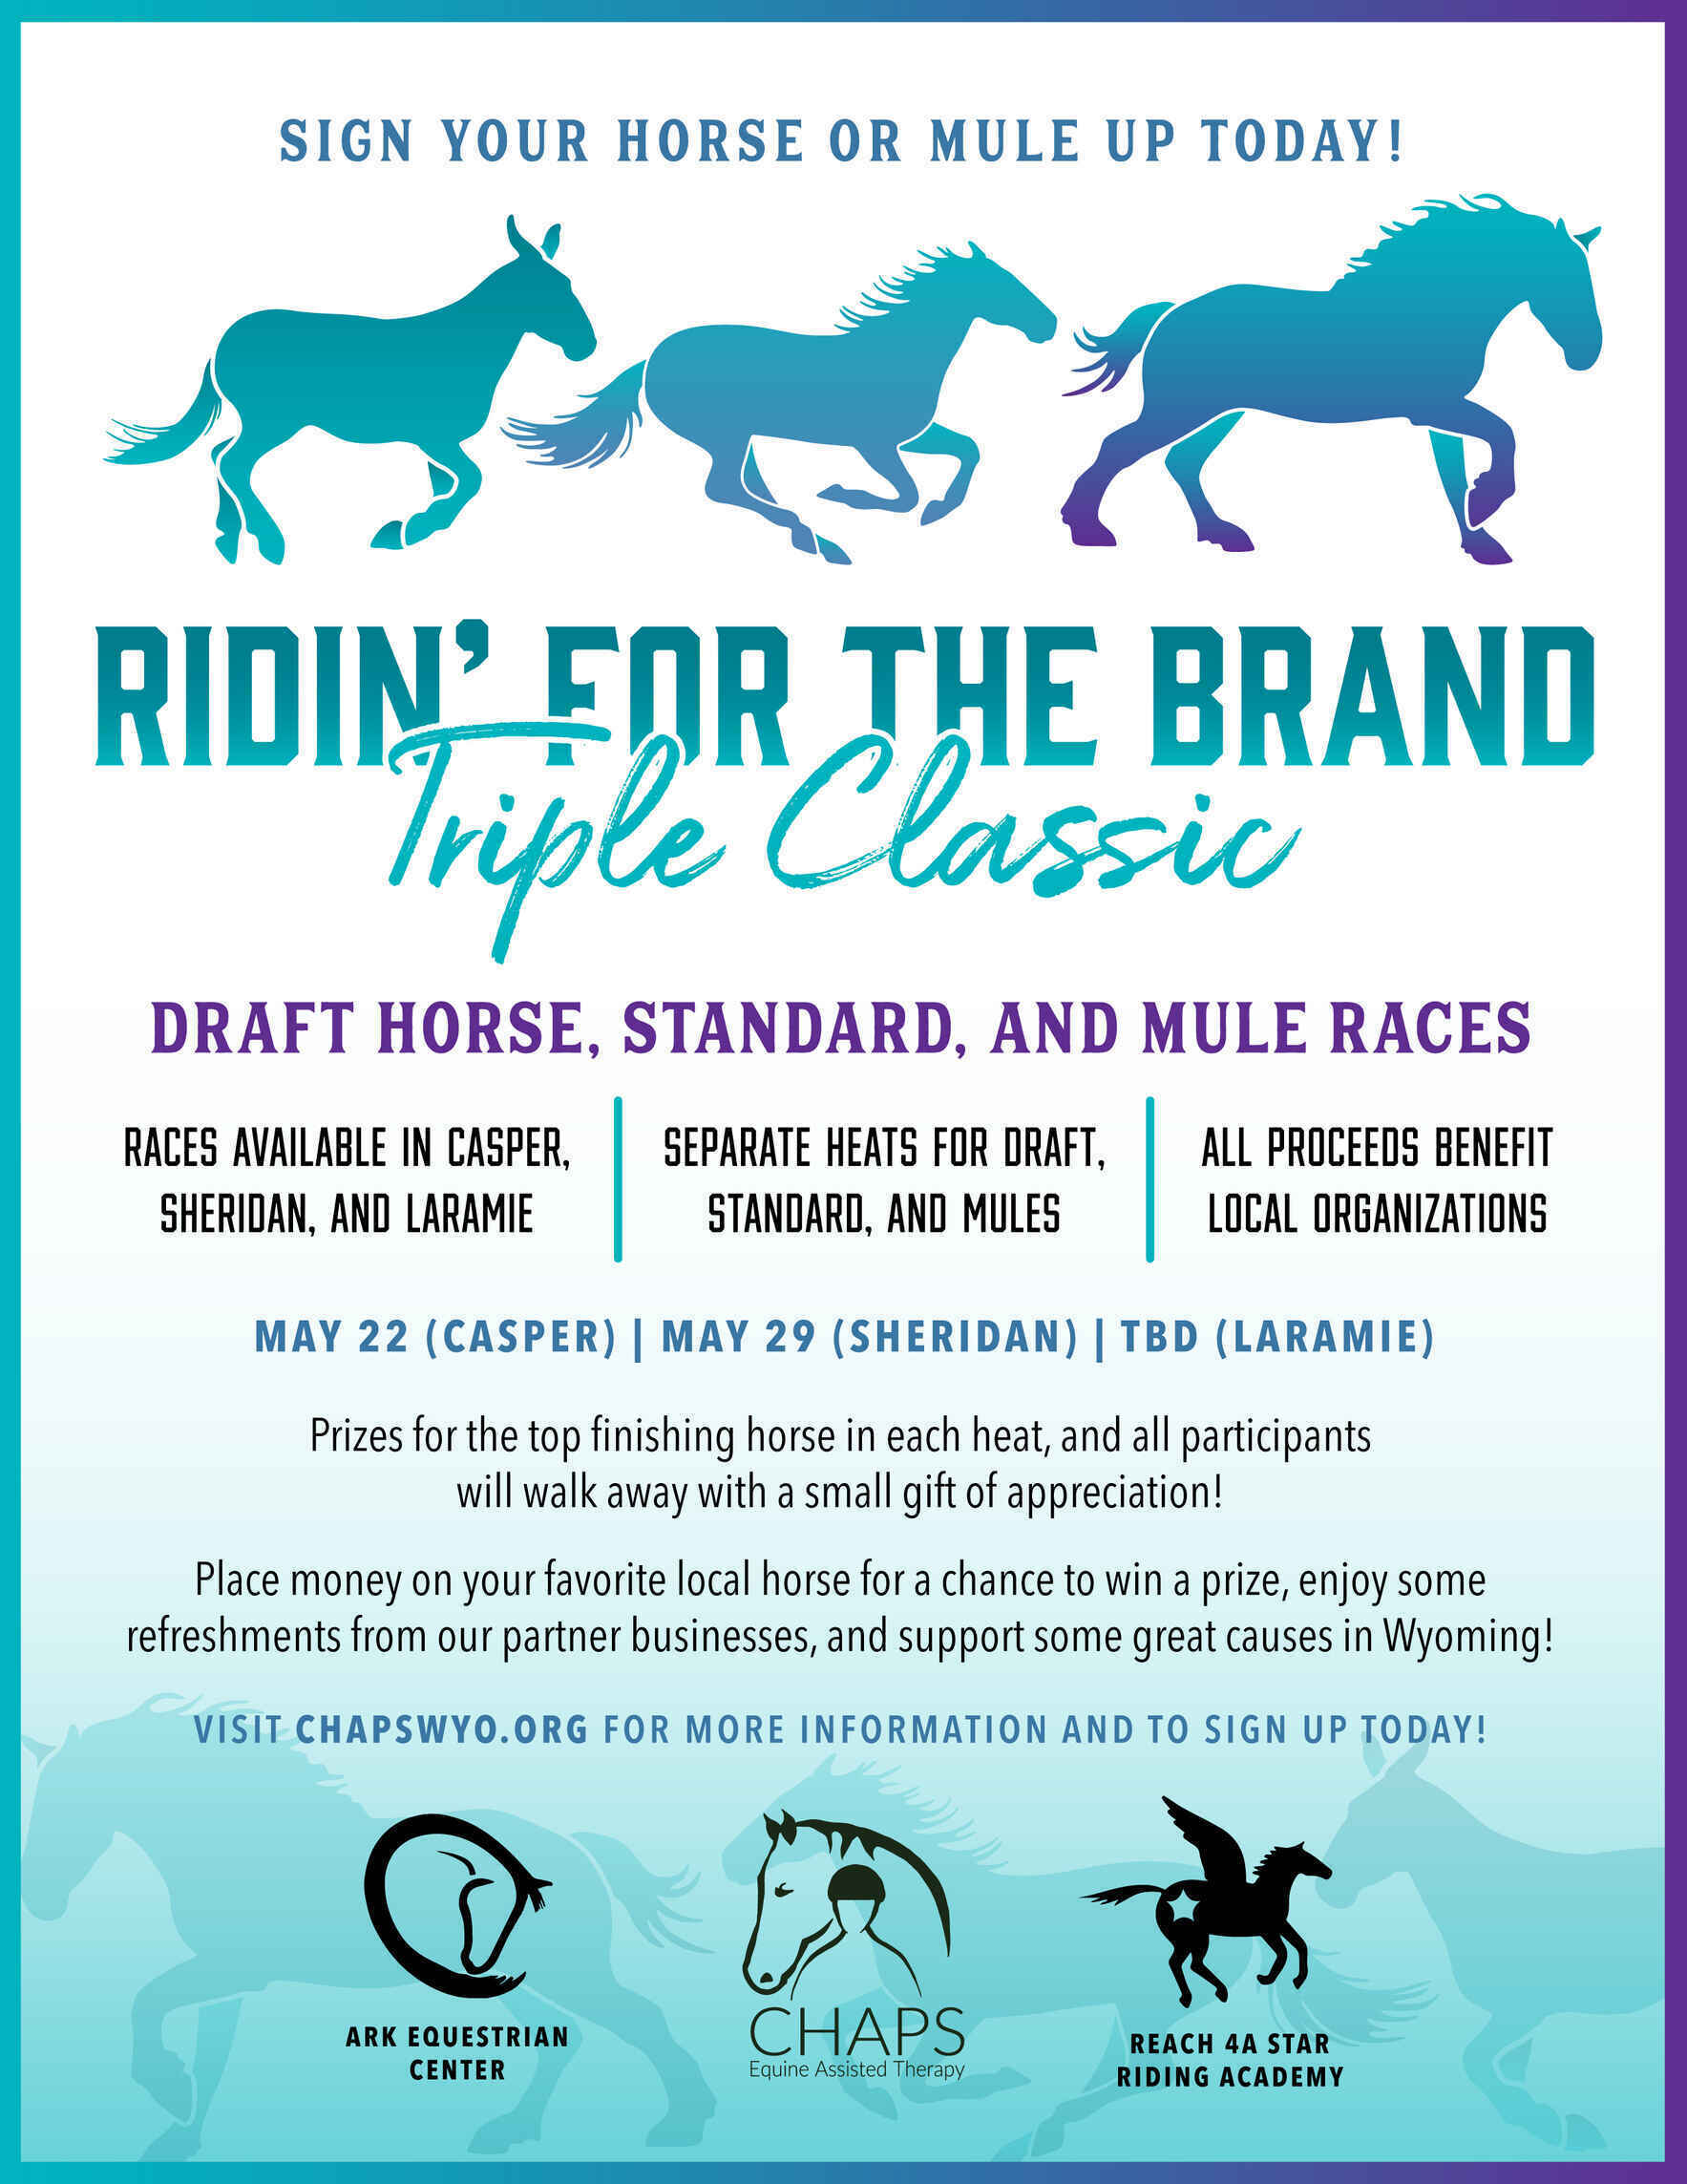 Choose your favorite horse to win!  image